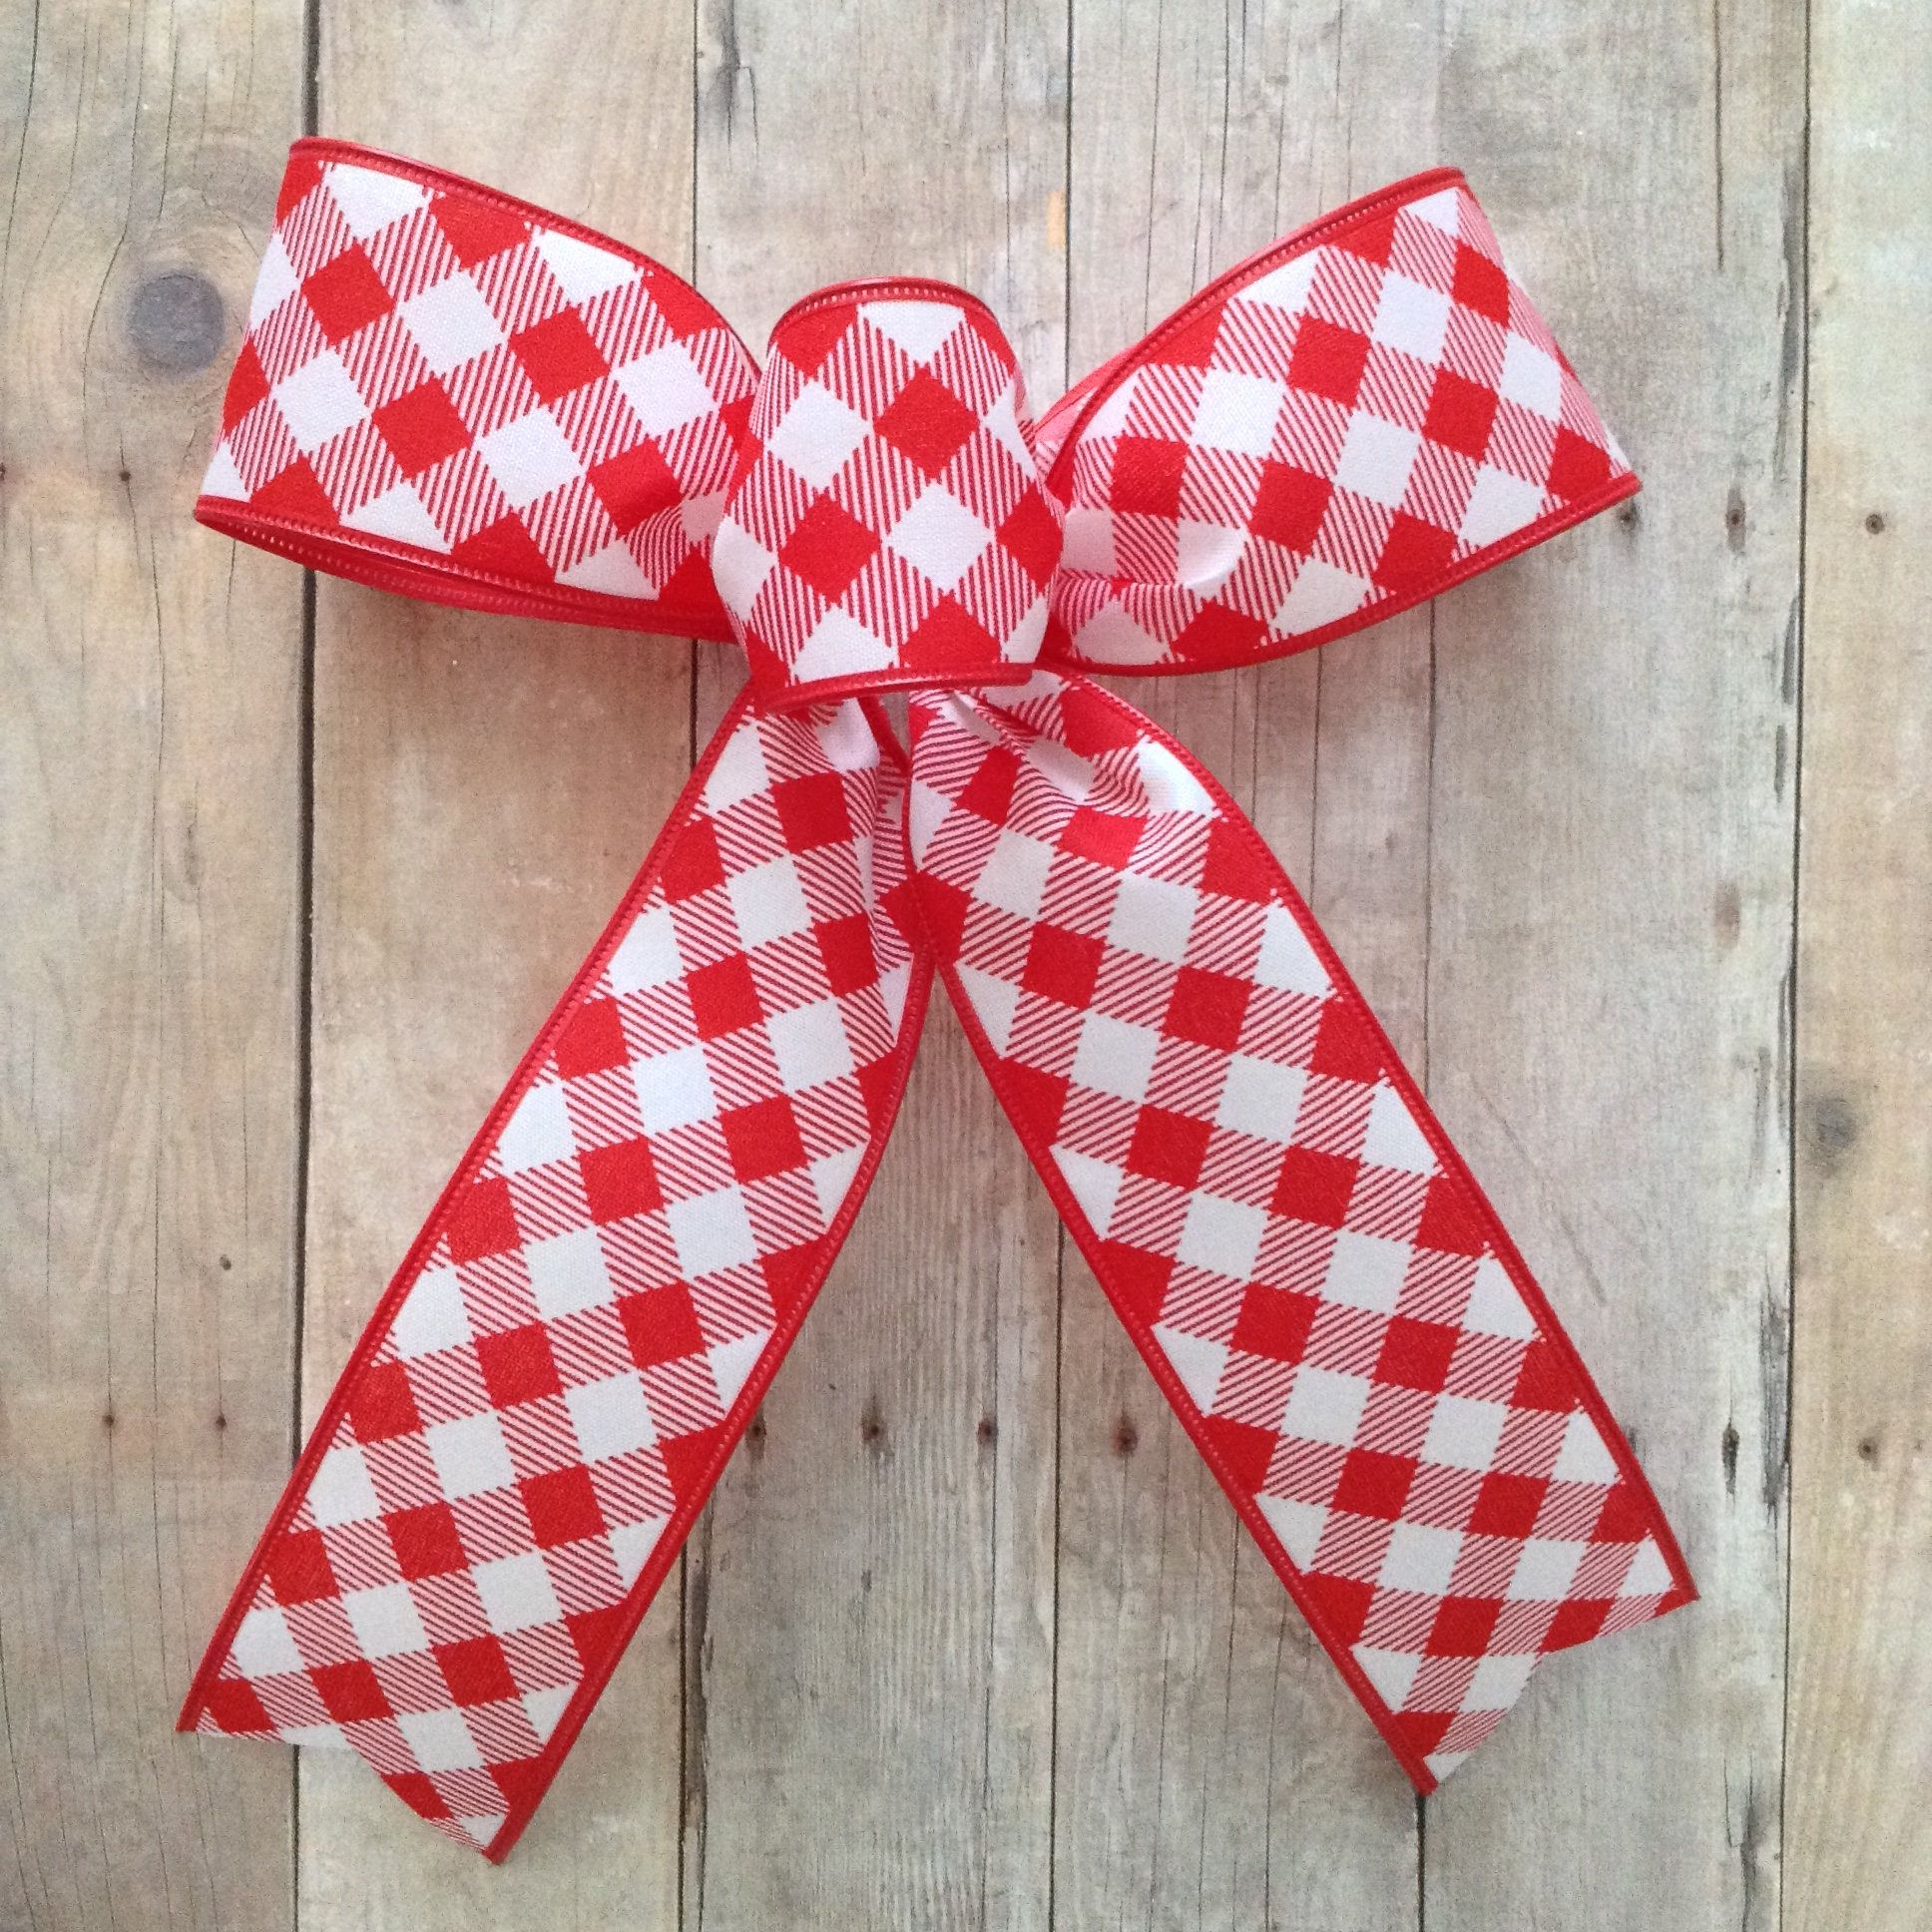 Christmas Tree Bows Xmas Red And White Bows Gingham Red And White Bows Gingham Check Basketweave Decorative Bows Set Of 12 Small Bows Christmas Tree Bows Decorative Bows Small Bows